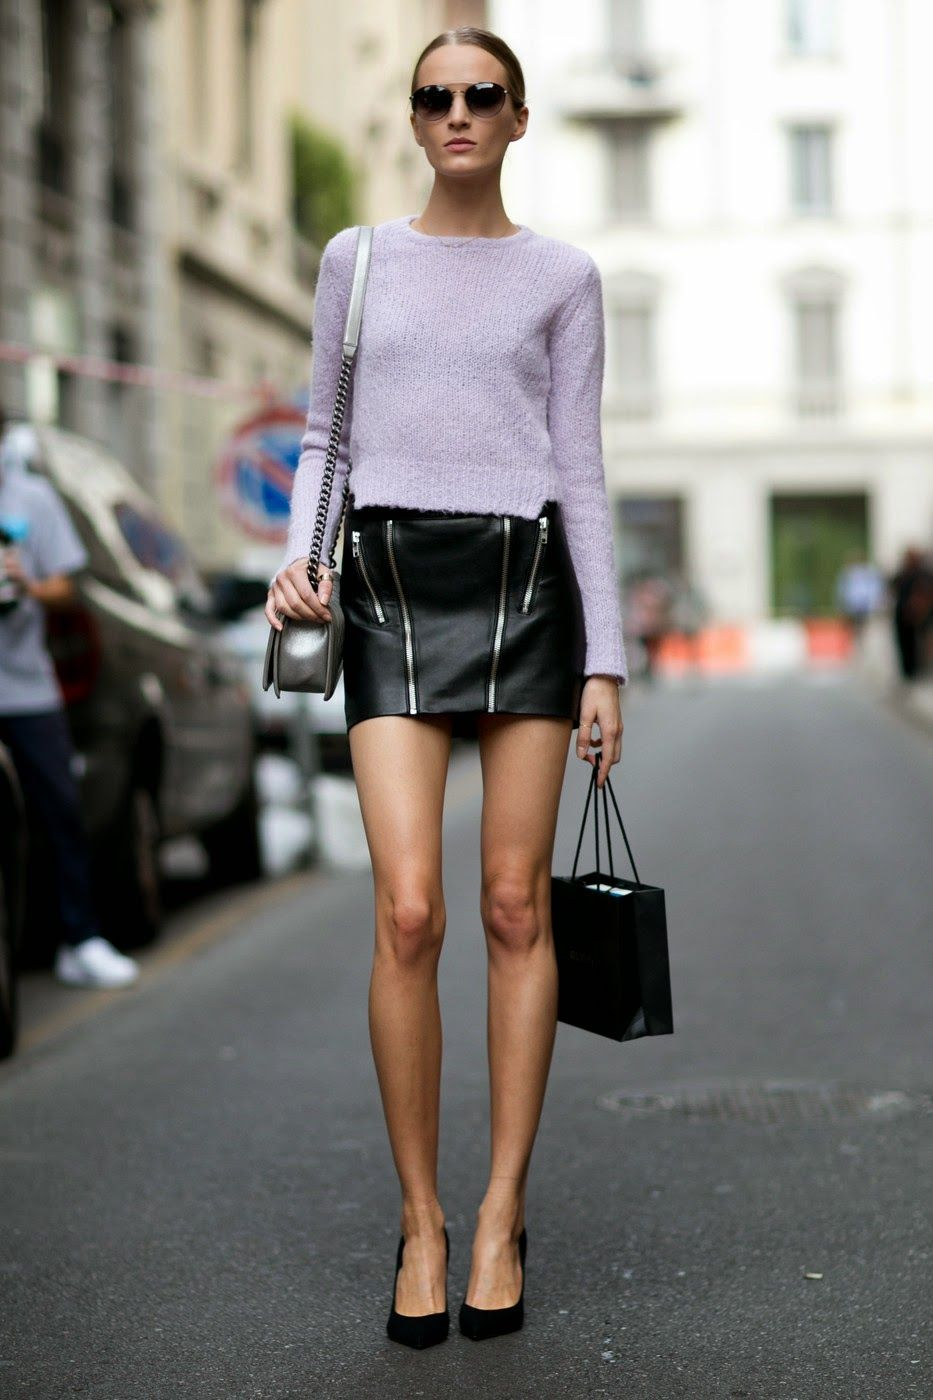 Model Street Style: Daria Strokous' Leather Mini Skirt | Fashion ...